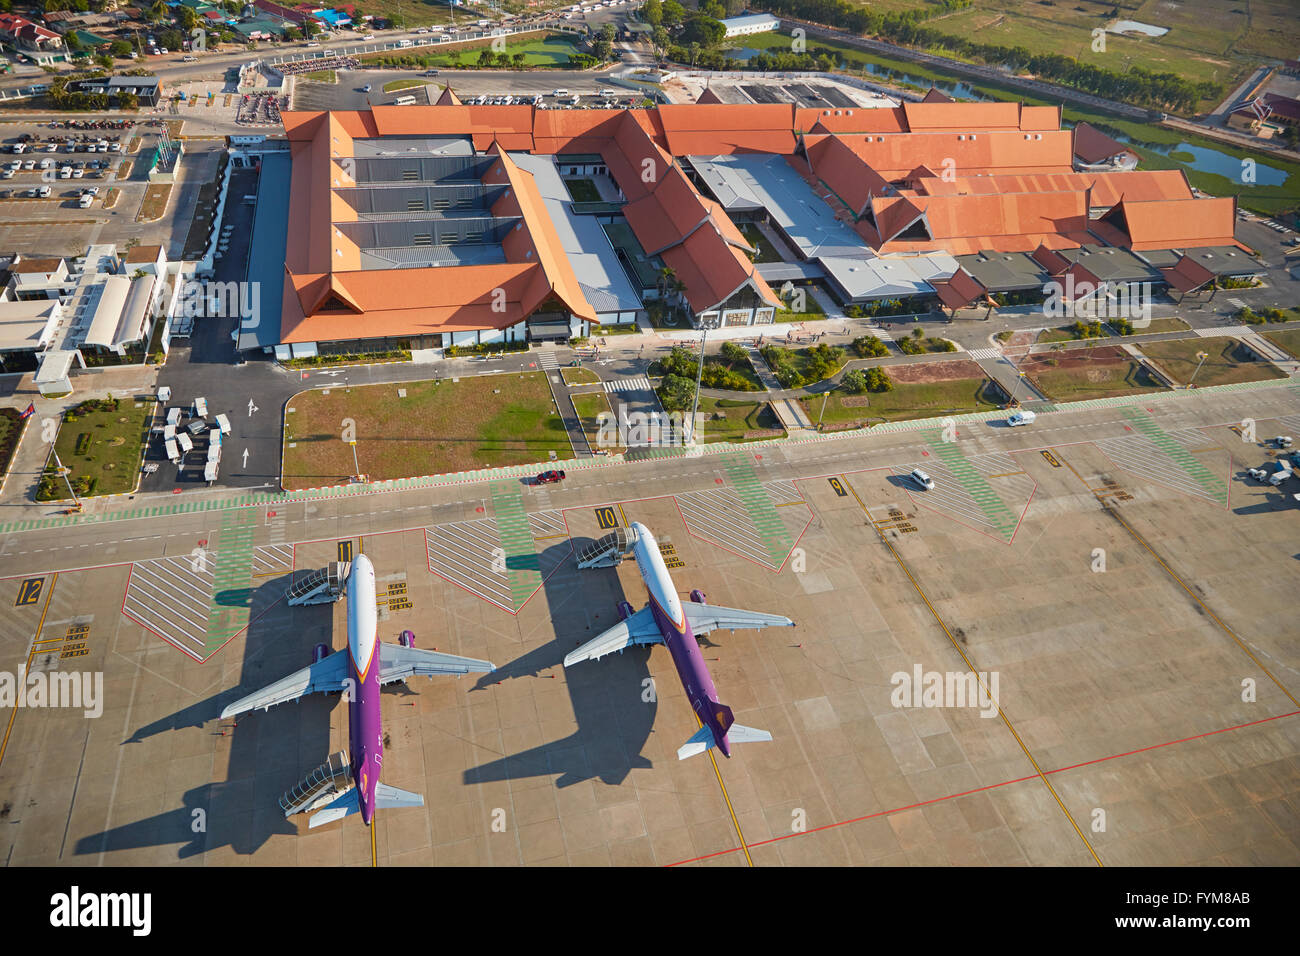 Cambodia Angkor Air planes at Siem Reap International Airport, Siem Reap, Cambodia - aerial - Stock Image